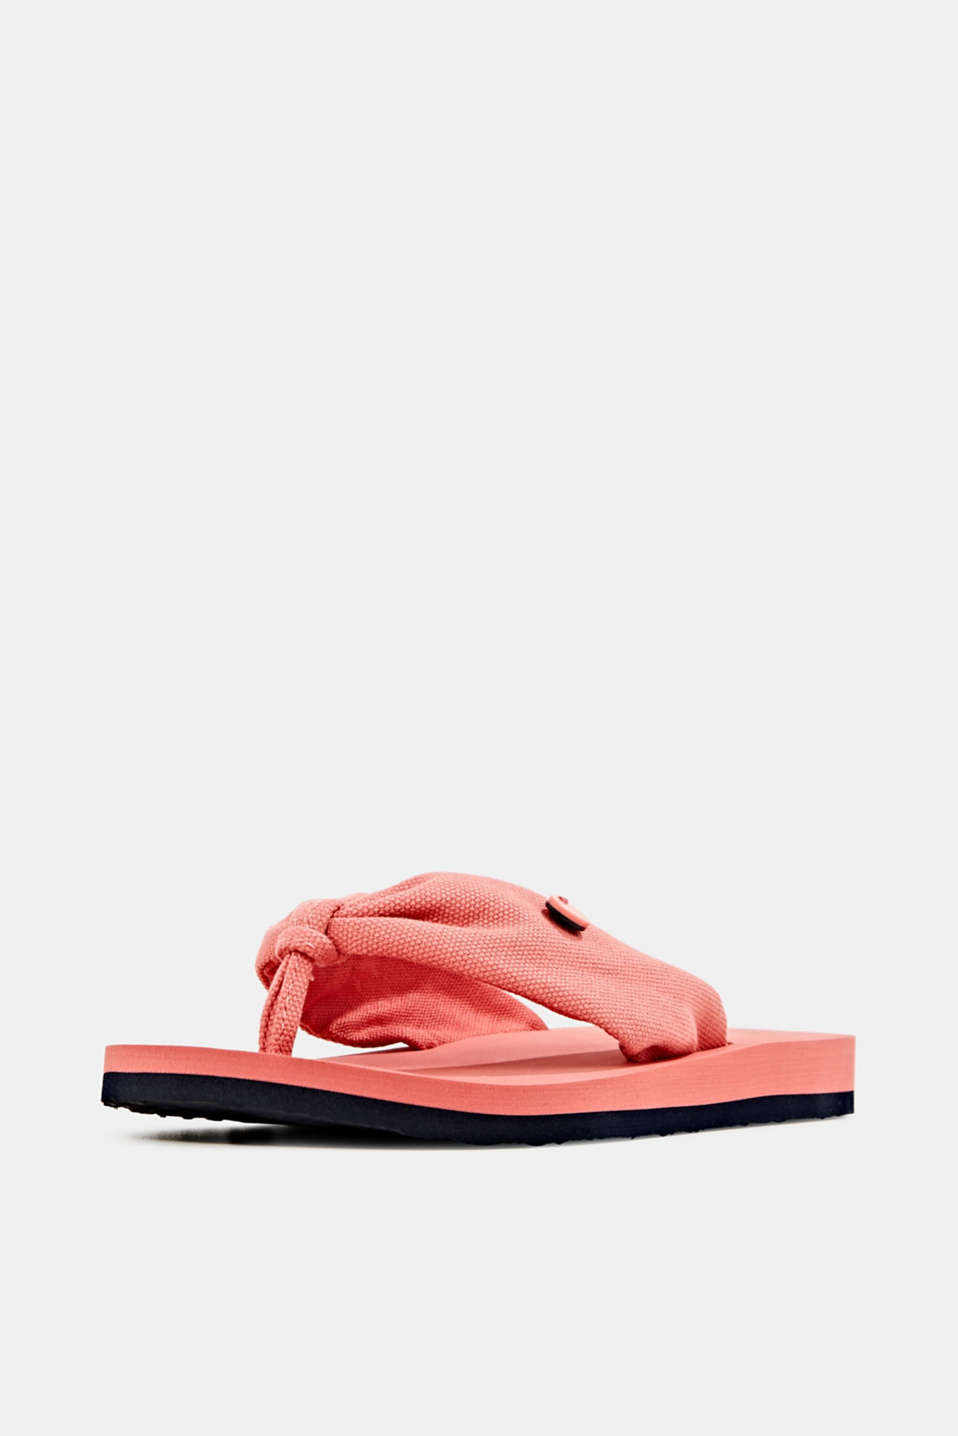 Thong sandals with floral print, CORAL, detail image number 2